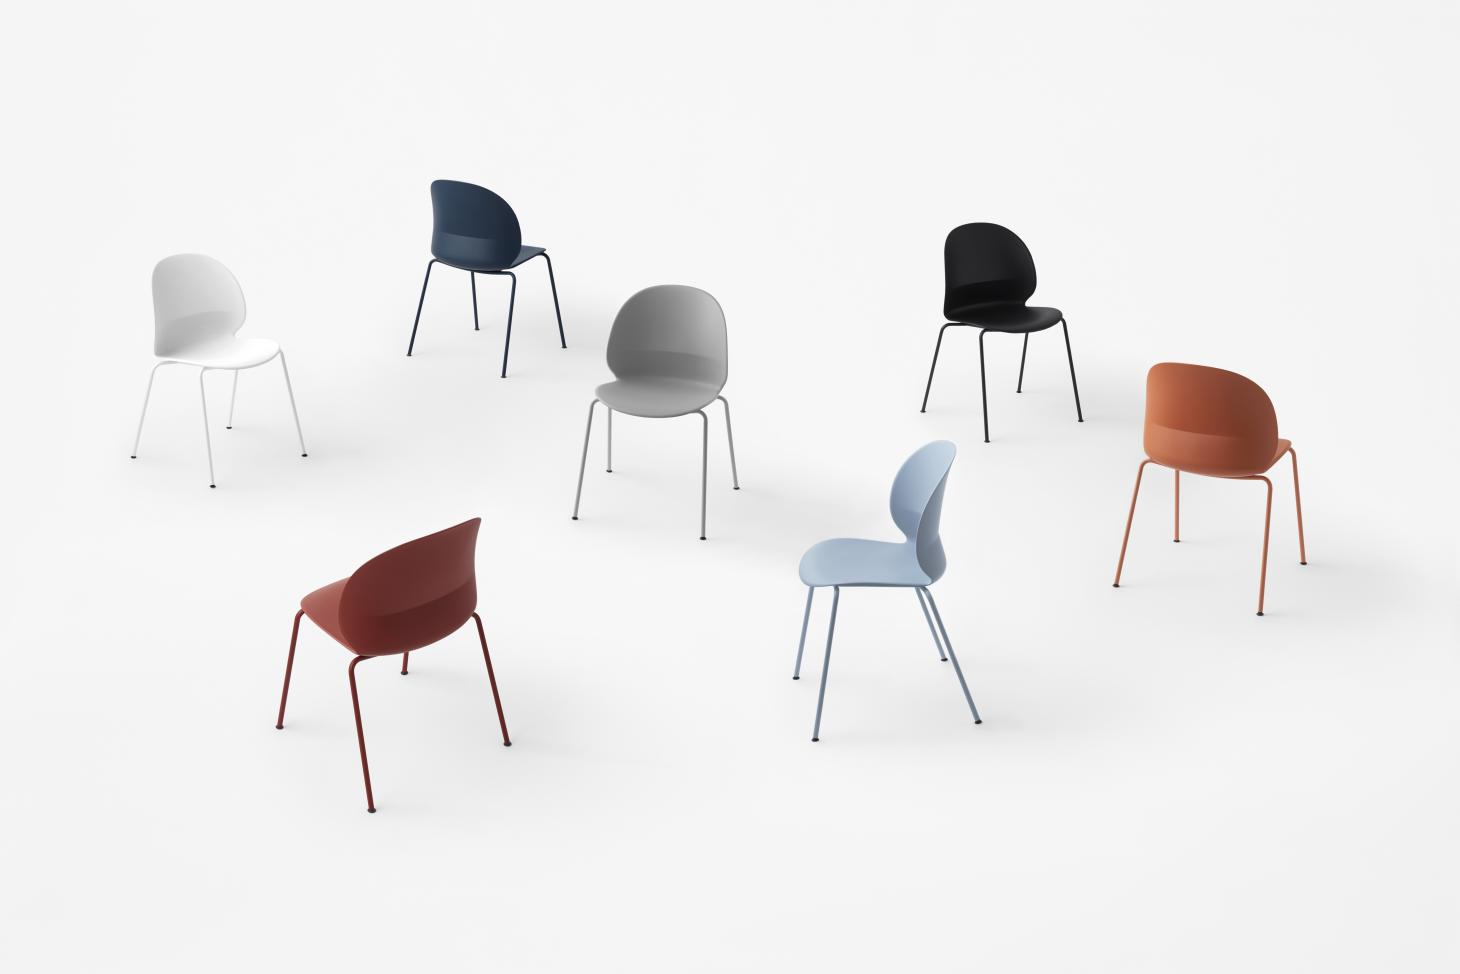 sustainable chair by Nendo